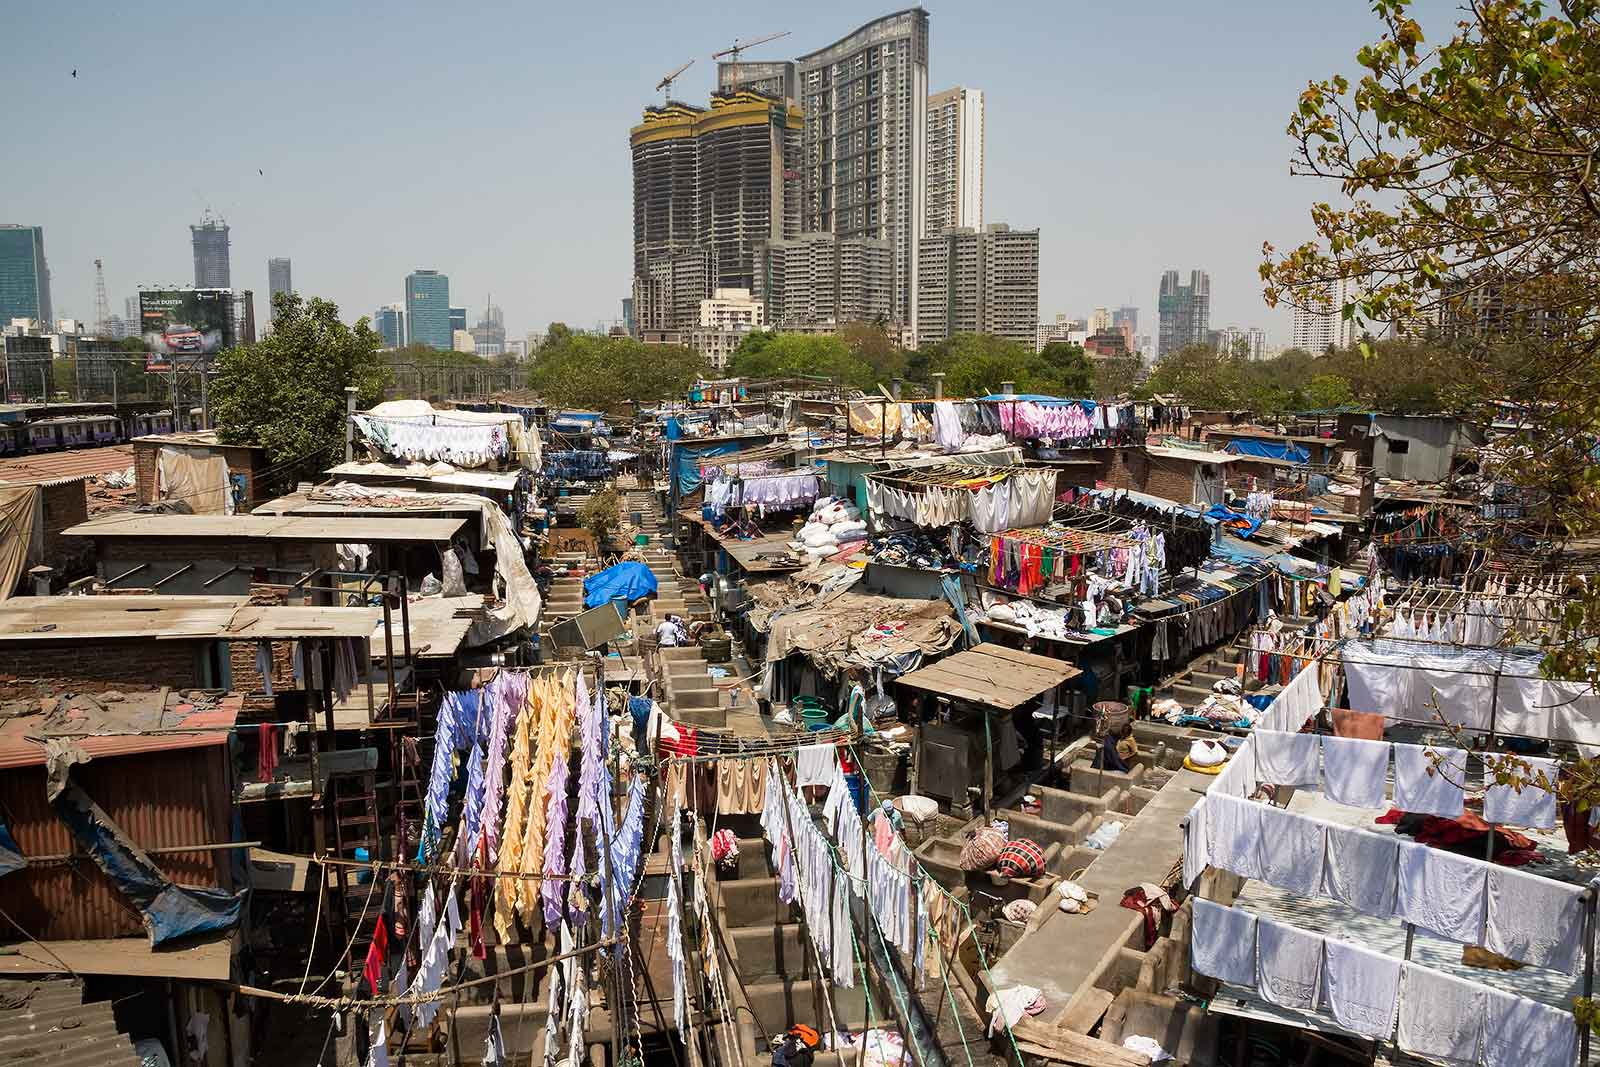 If you want to enter Mahalakshmi Dhobi Ghat, you will be asked for money, since this place has become such a tourist attraction.